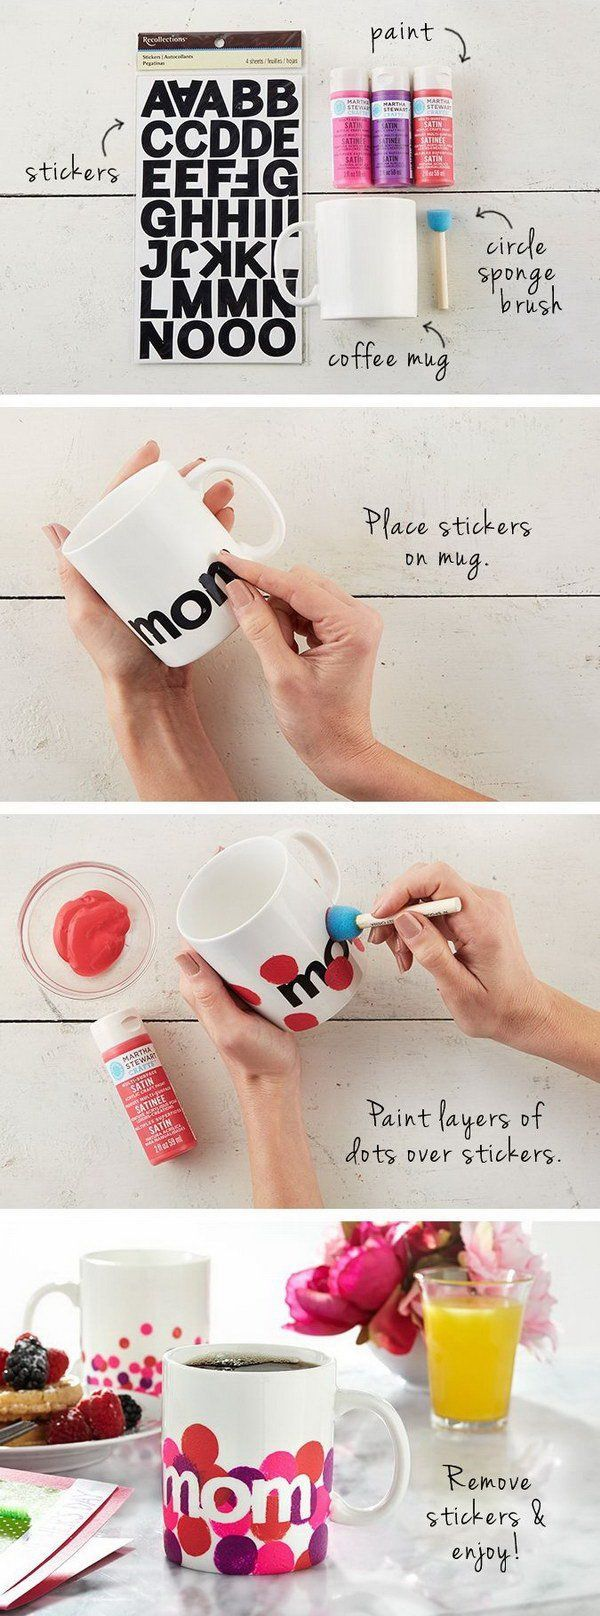 Image Result For Friendship Day Gift Ideas Diy Hobbies Diy Gifts